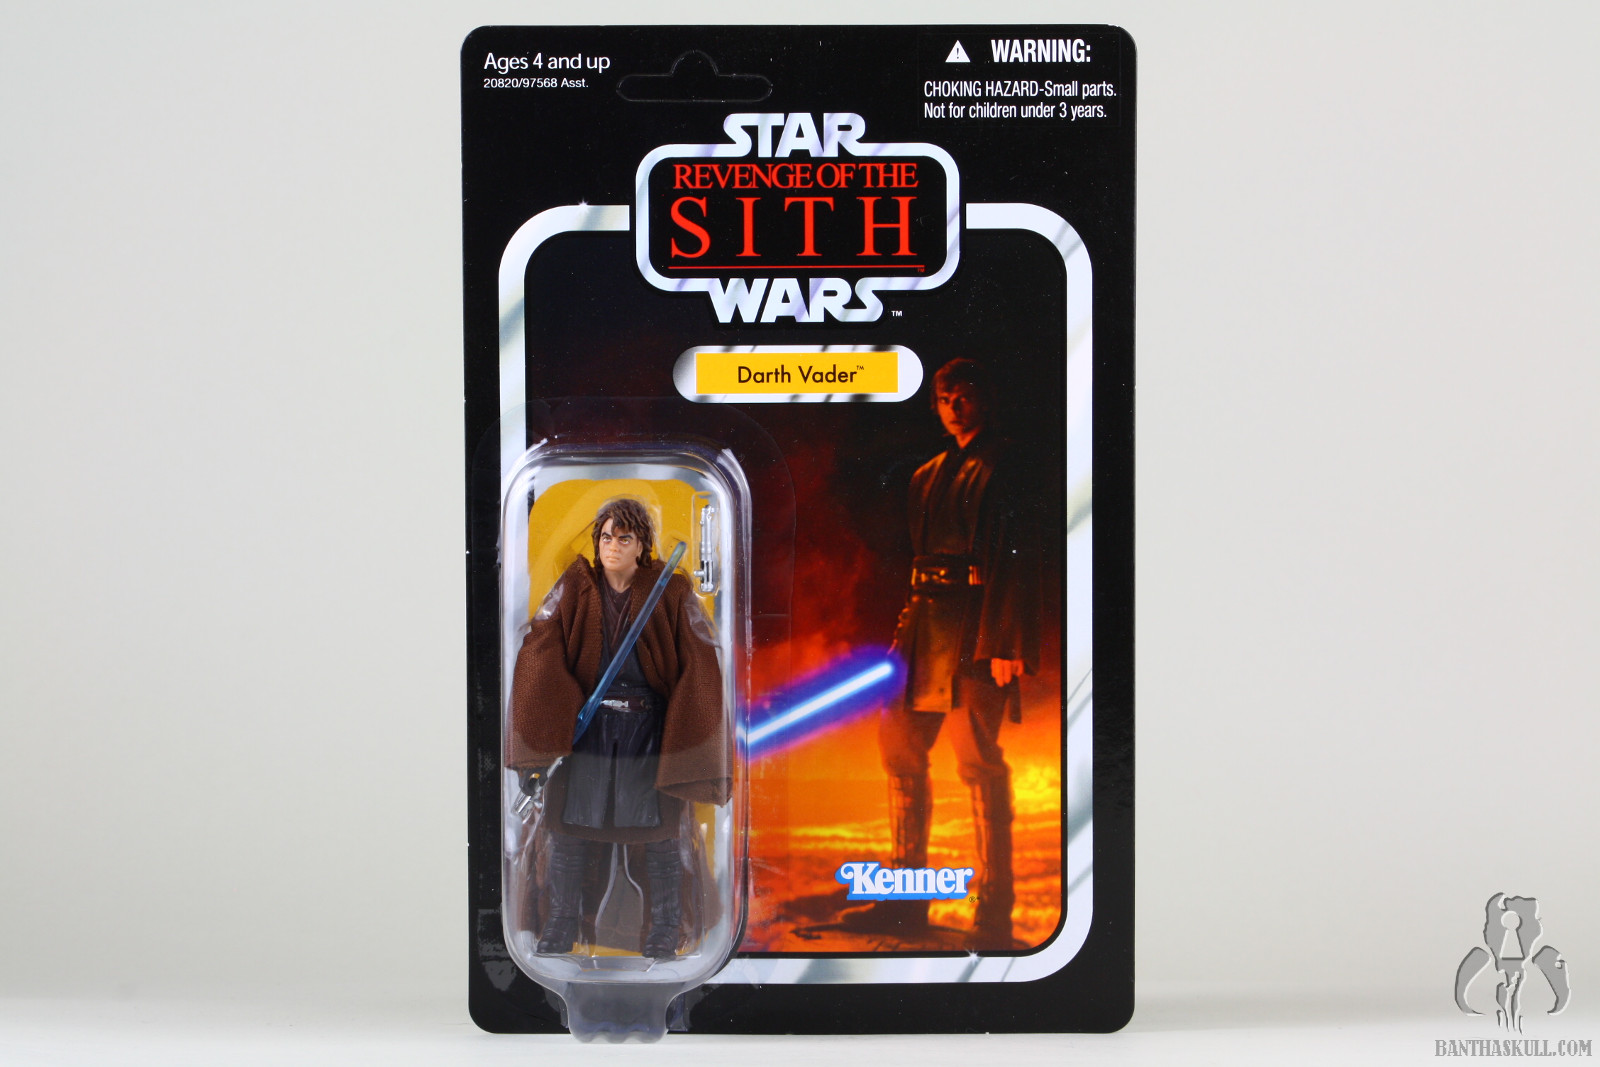 Anakin Skywalker VC13 2010 Star Wars The Vintage Collection Comme neuf on Card